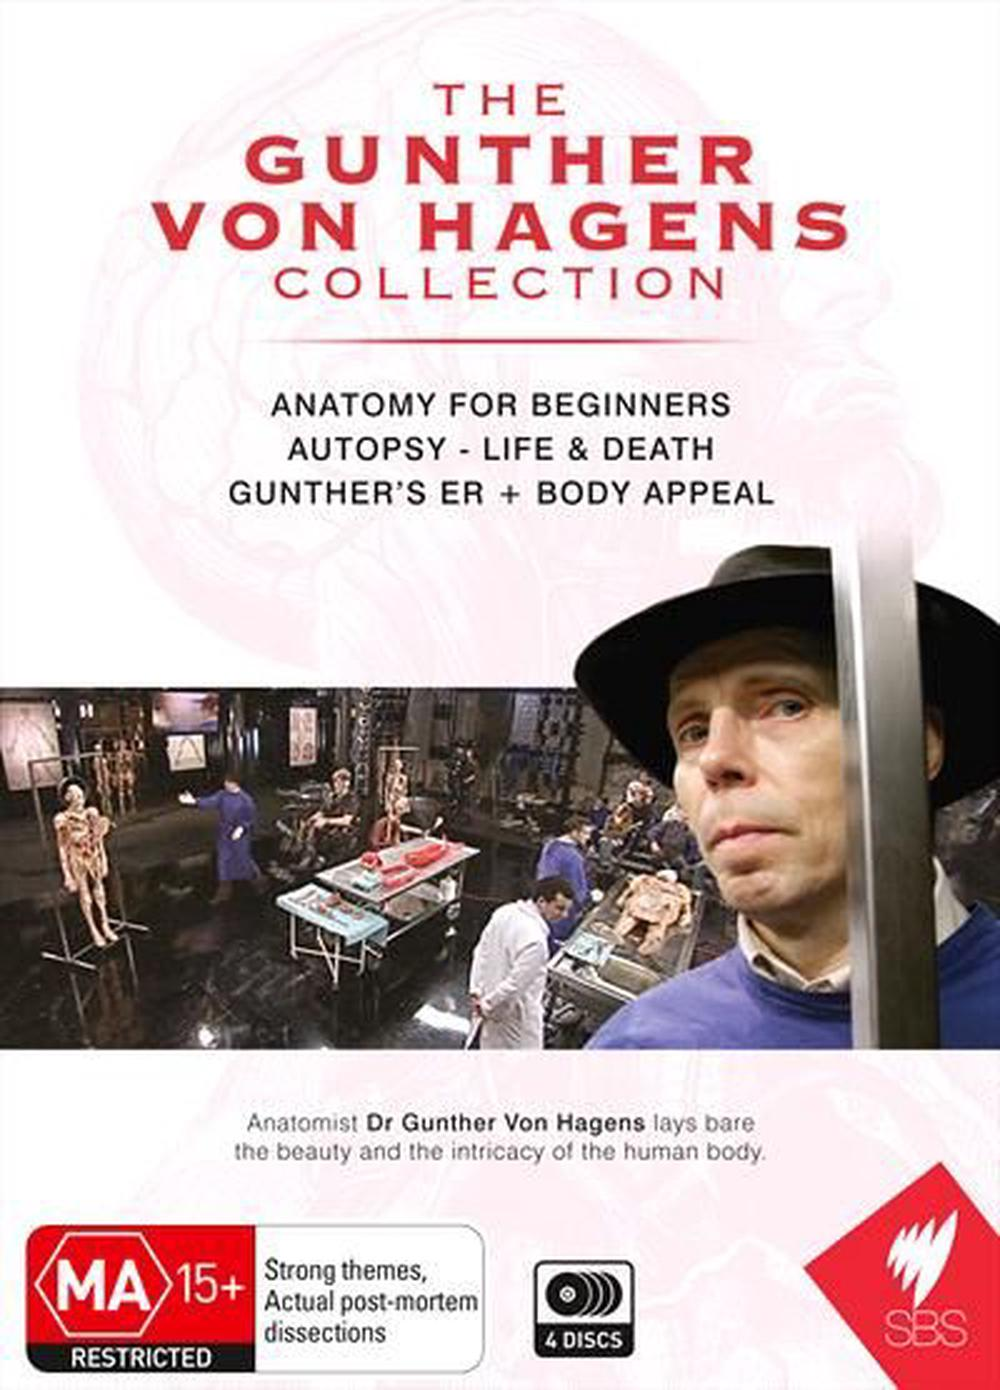 Gunther Von Hagens Collection, The, DVD | Buy online at The Nile